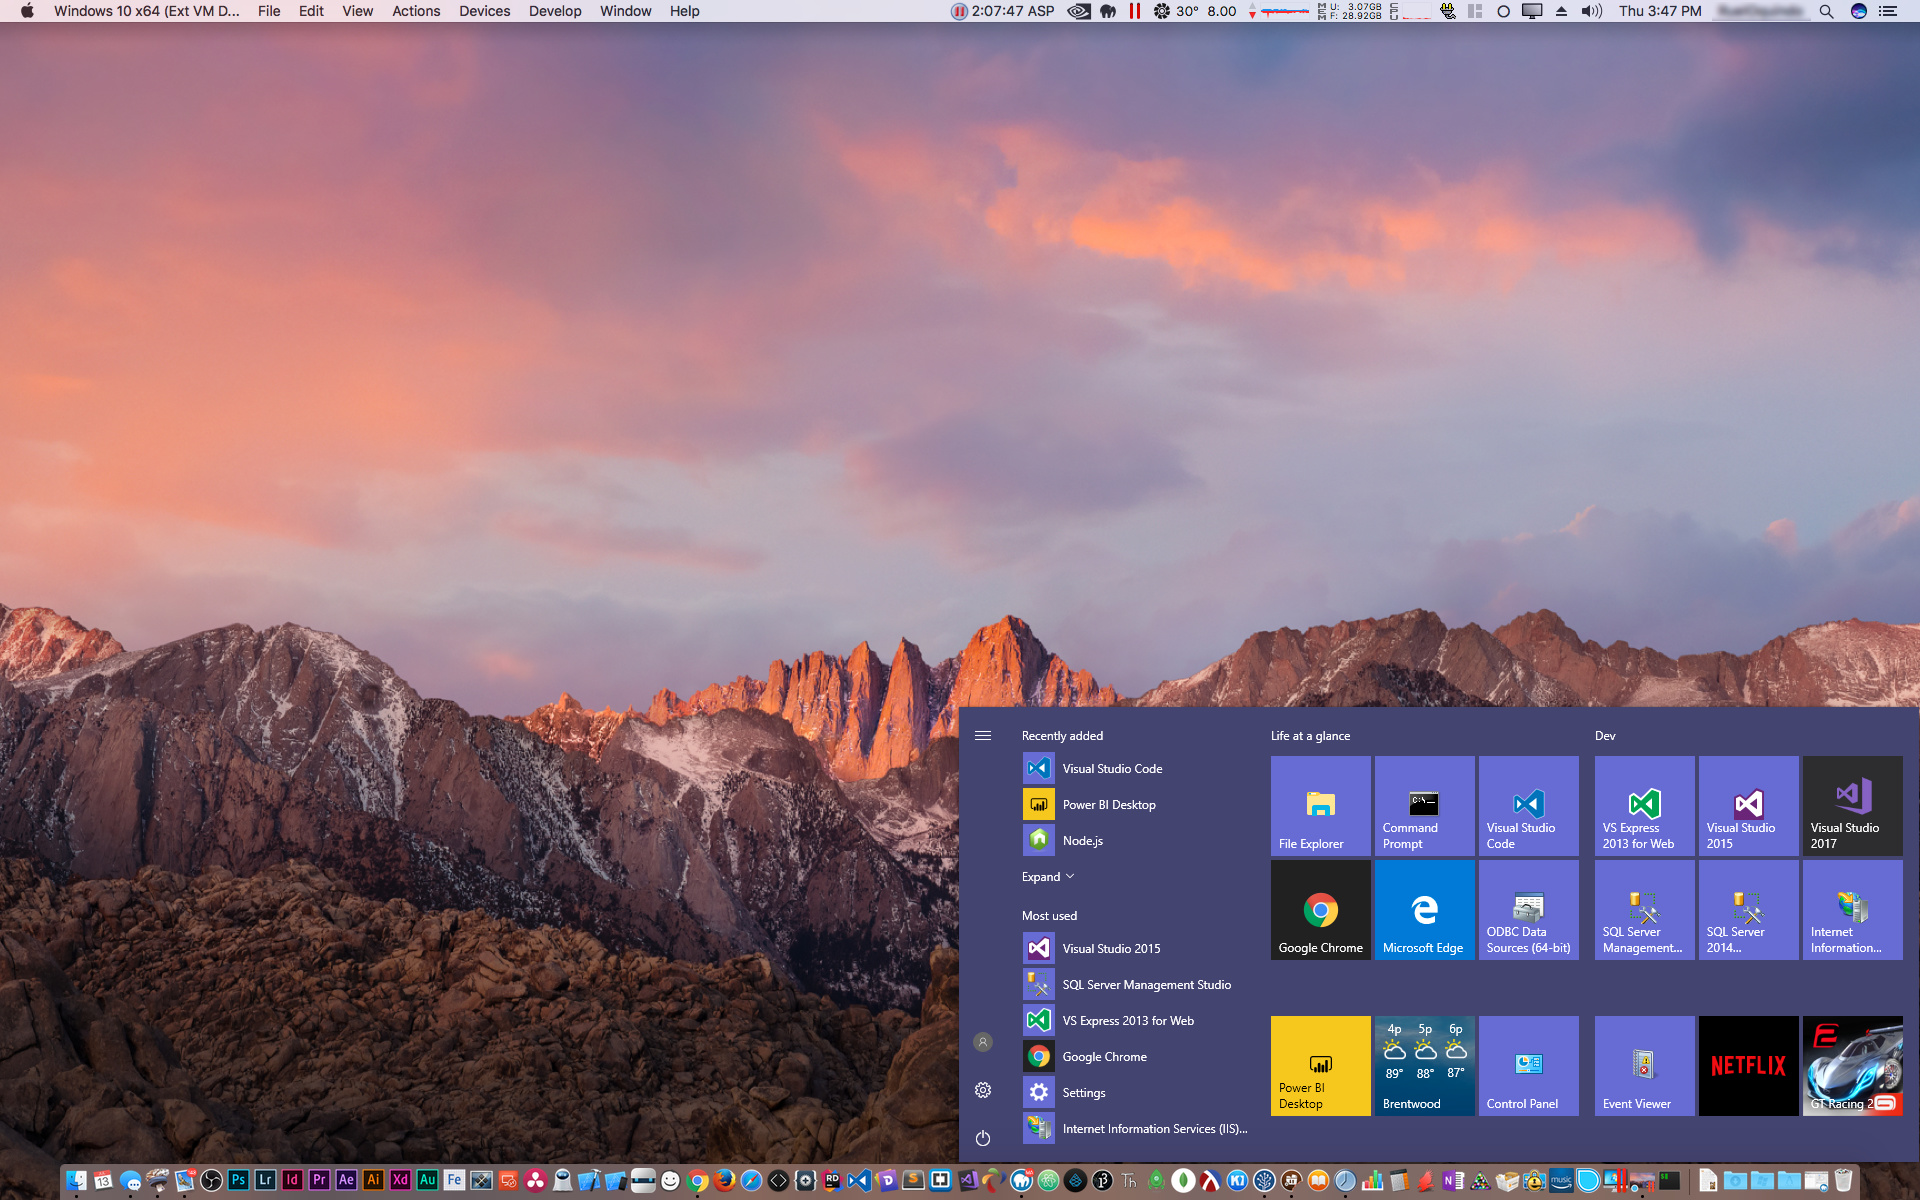 Why do so many devs use macs for laptop choice? - The